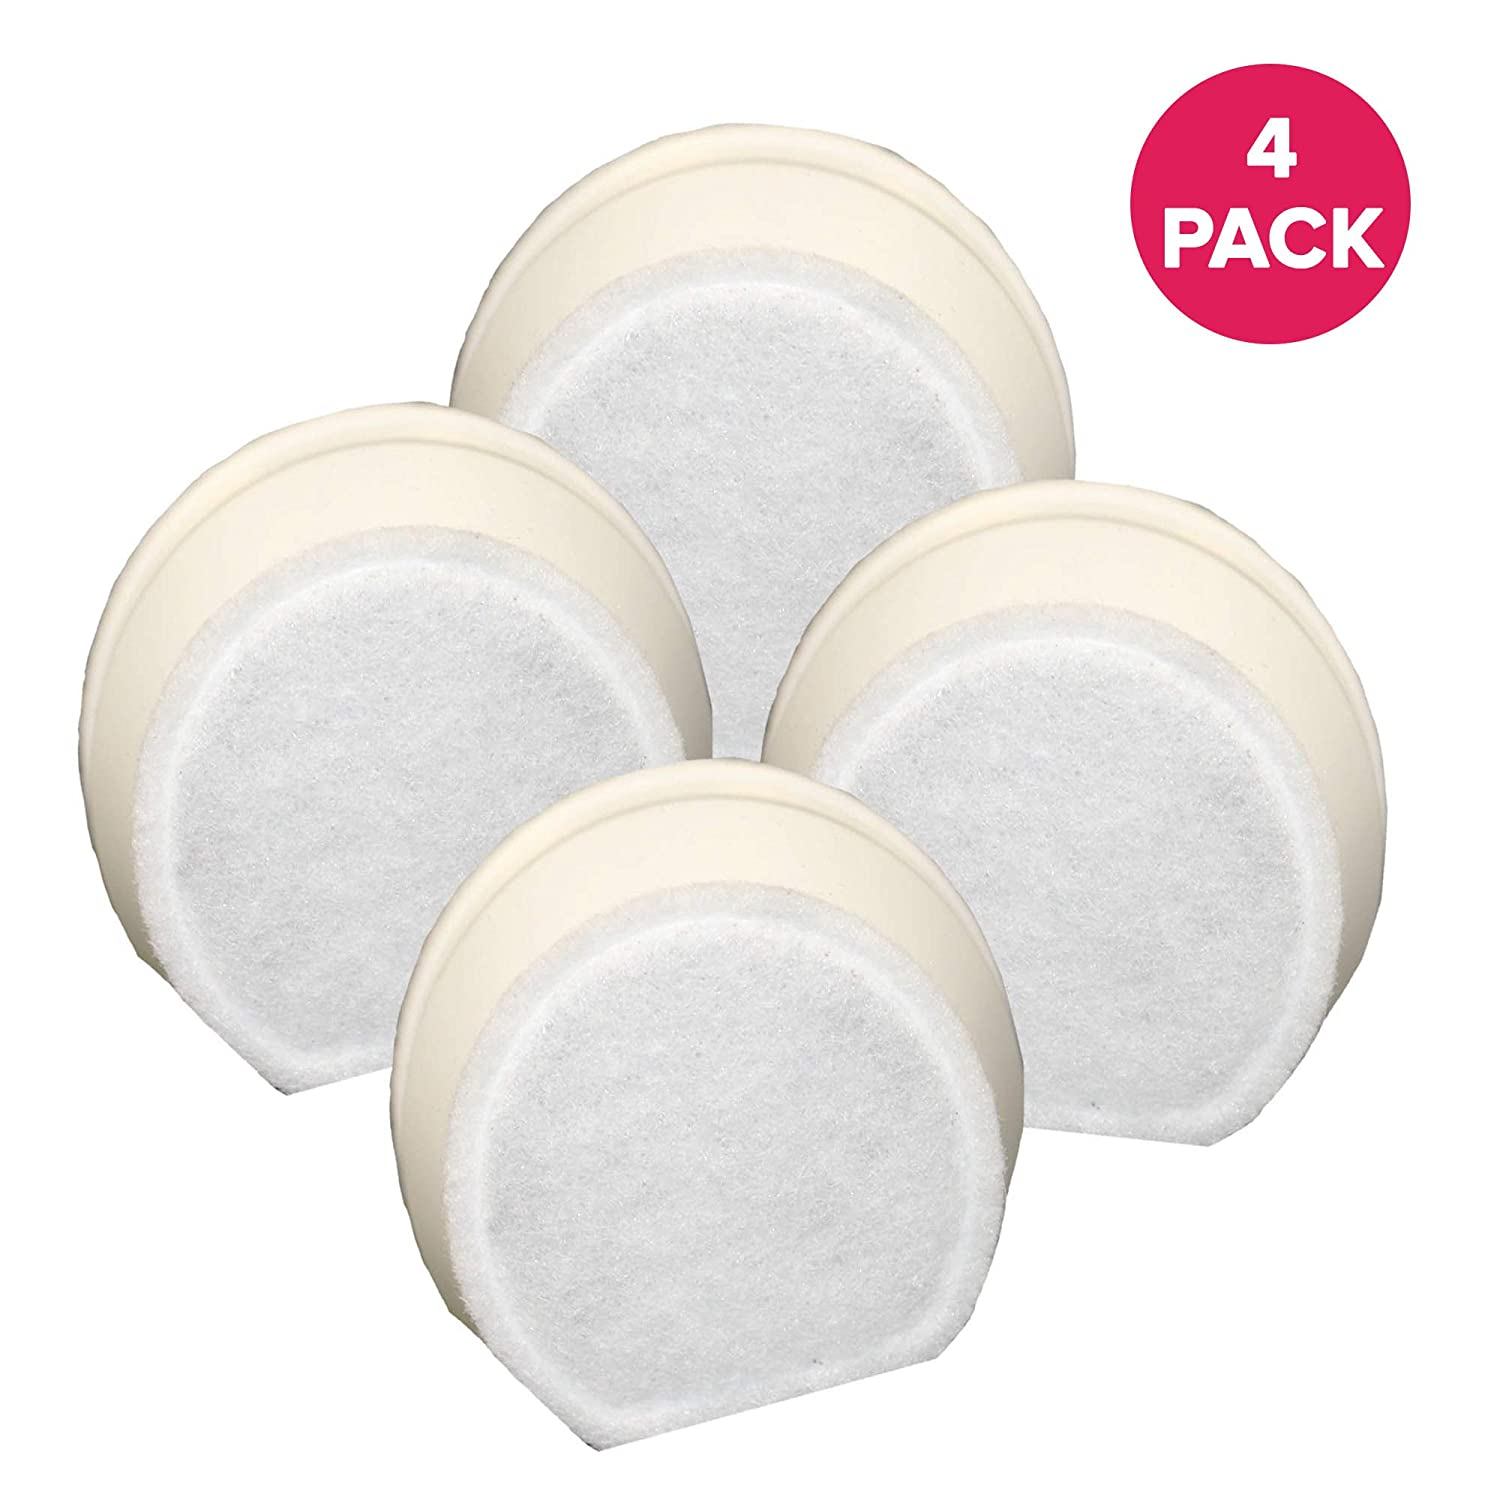 4 Packs Replacement Carbon Filters for Drinkwell Avalon Pagoda Sedona Fountain